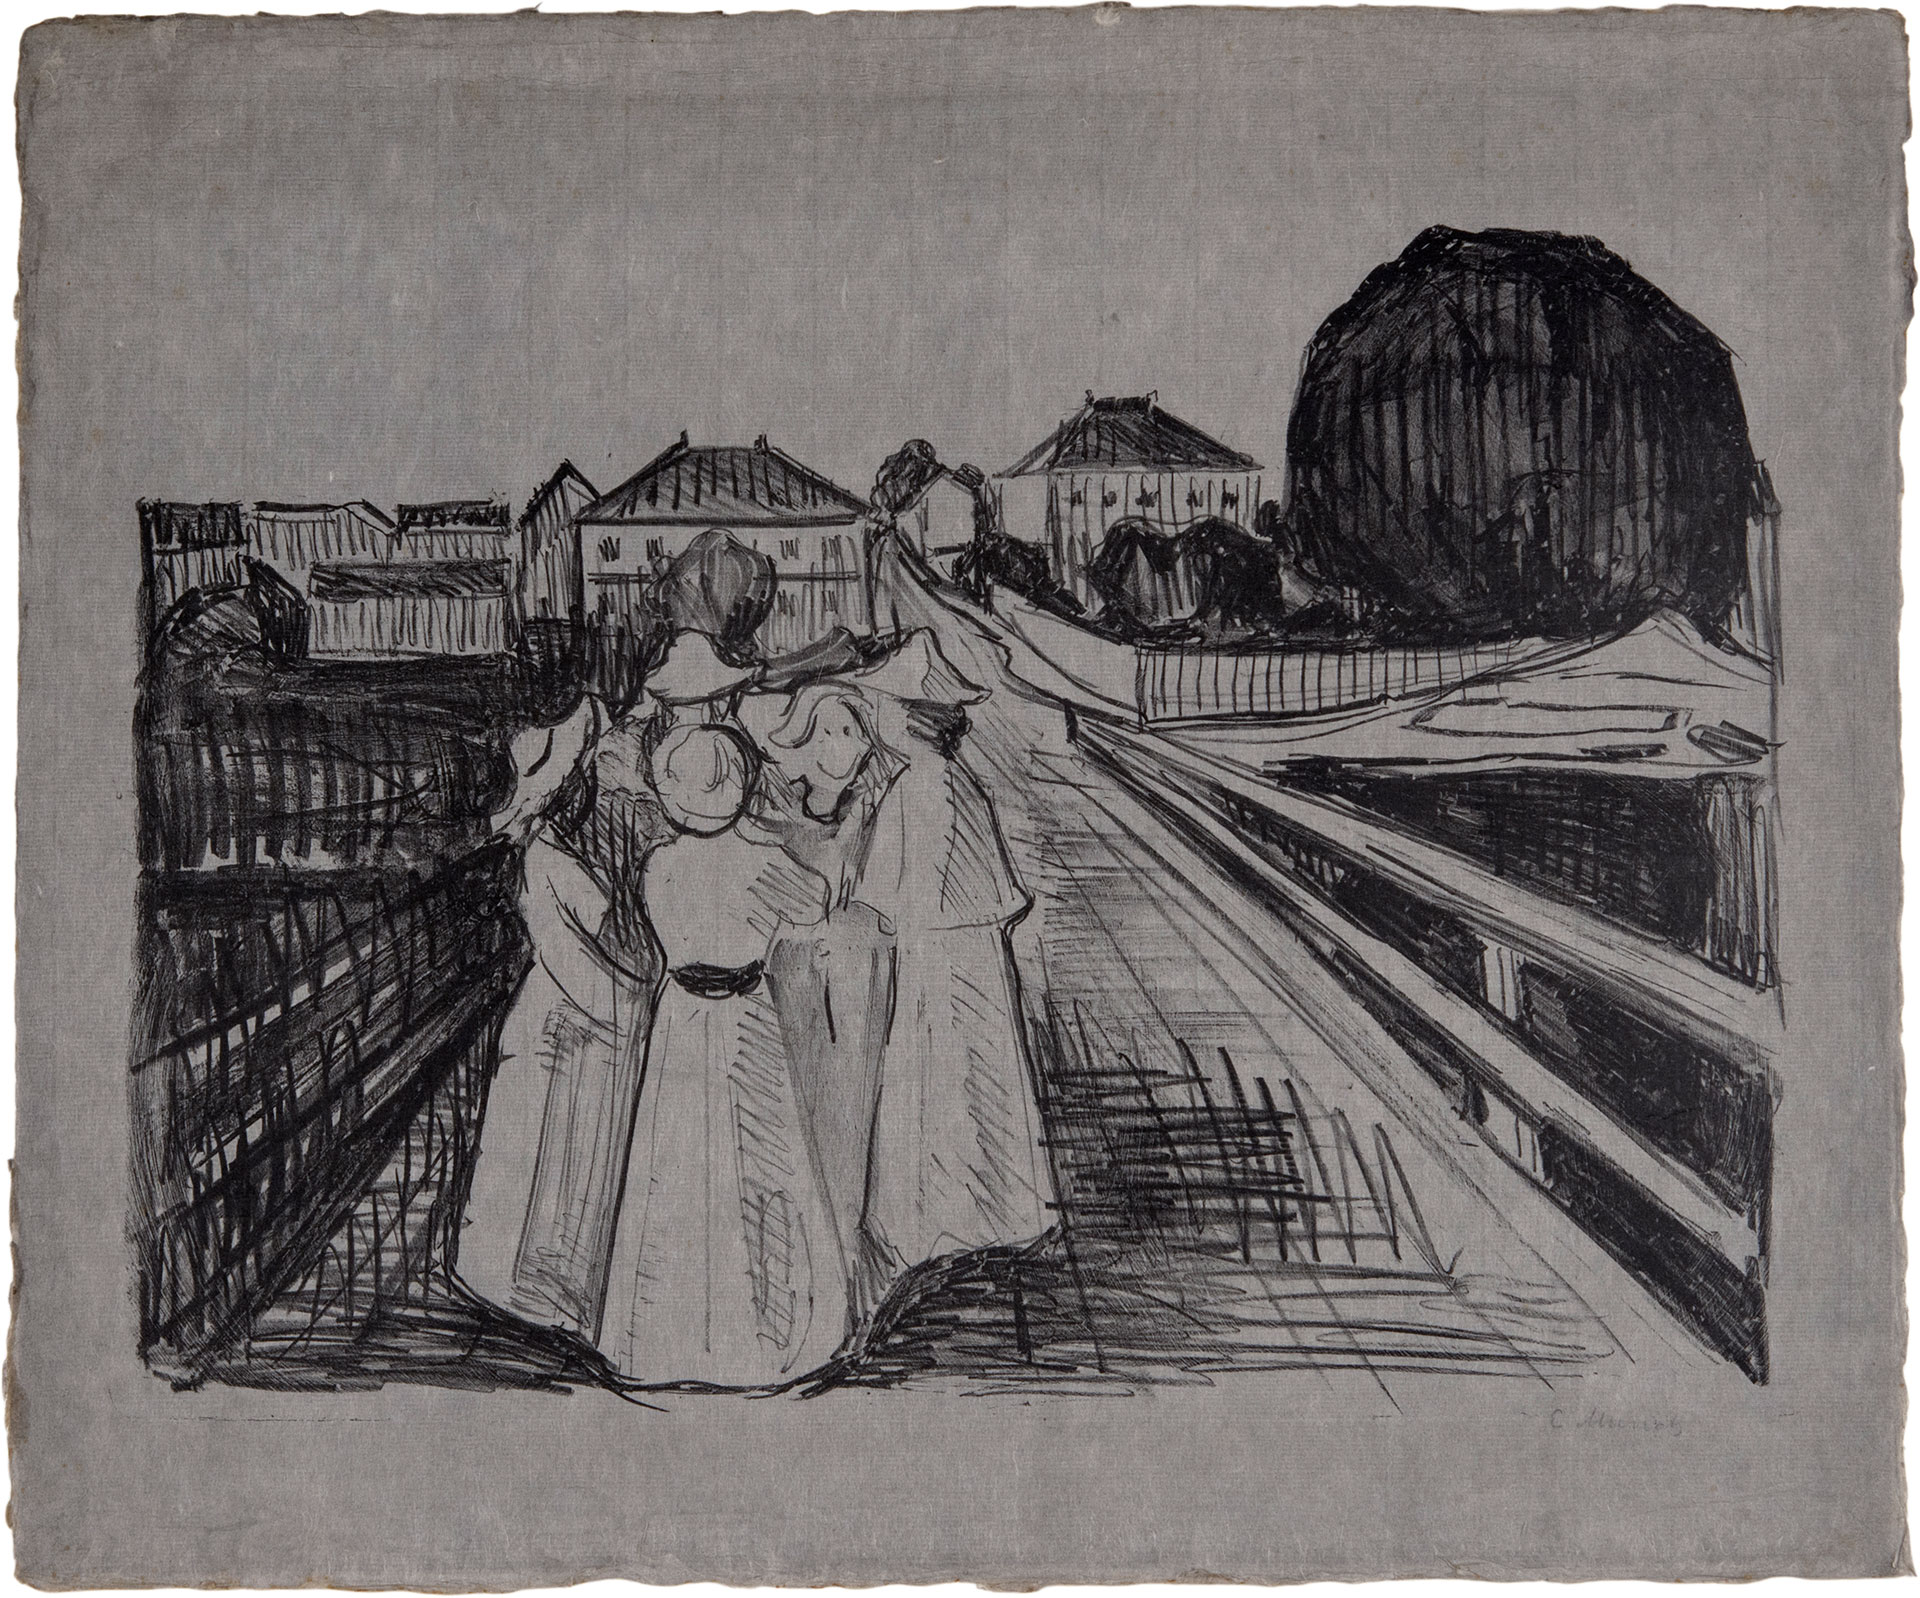 """On The Bridge"", litografía de Edvard Munch (1912-1913), en David Tunick."